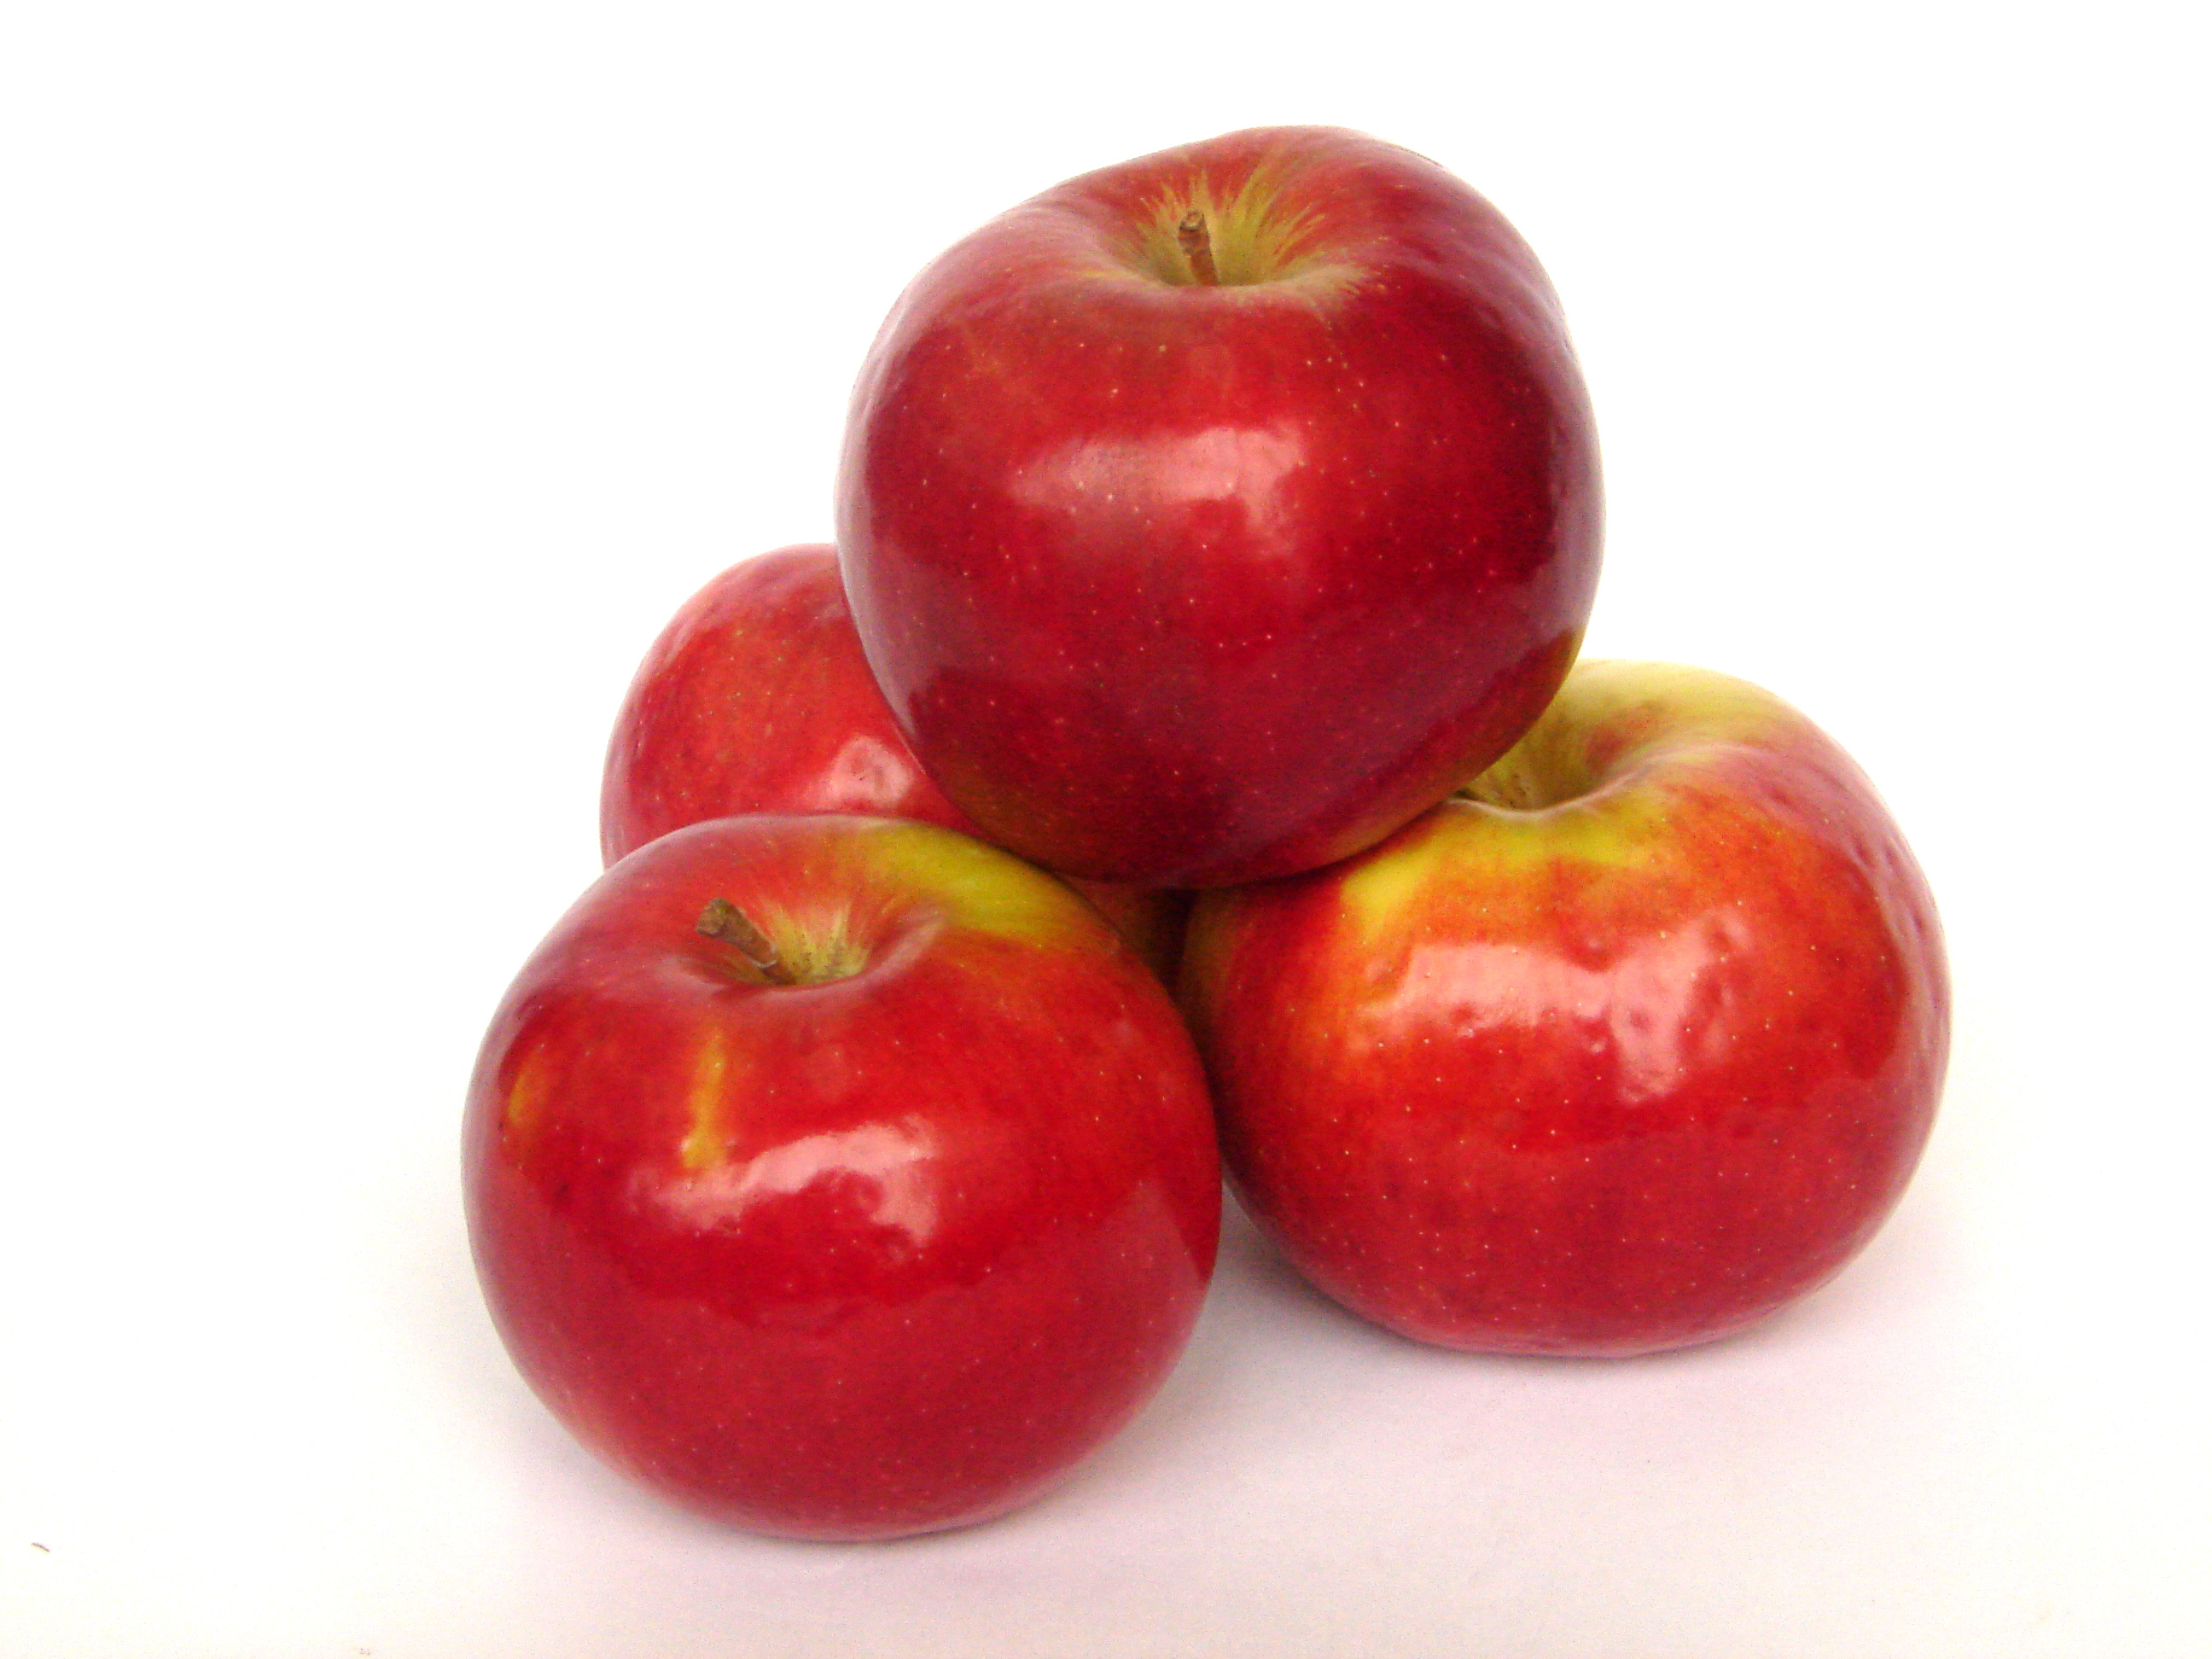 10 pics of apples free cliparts that you can download to you computer ...